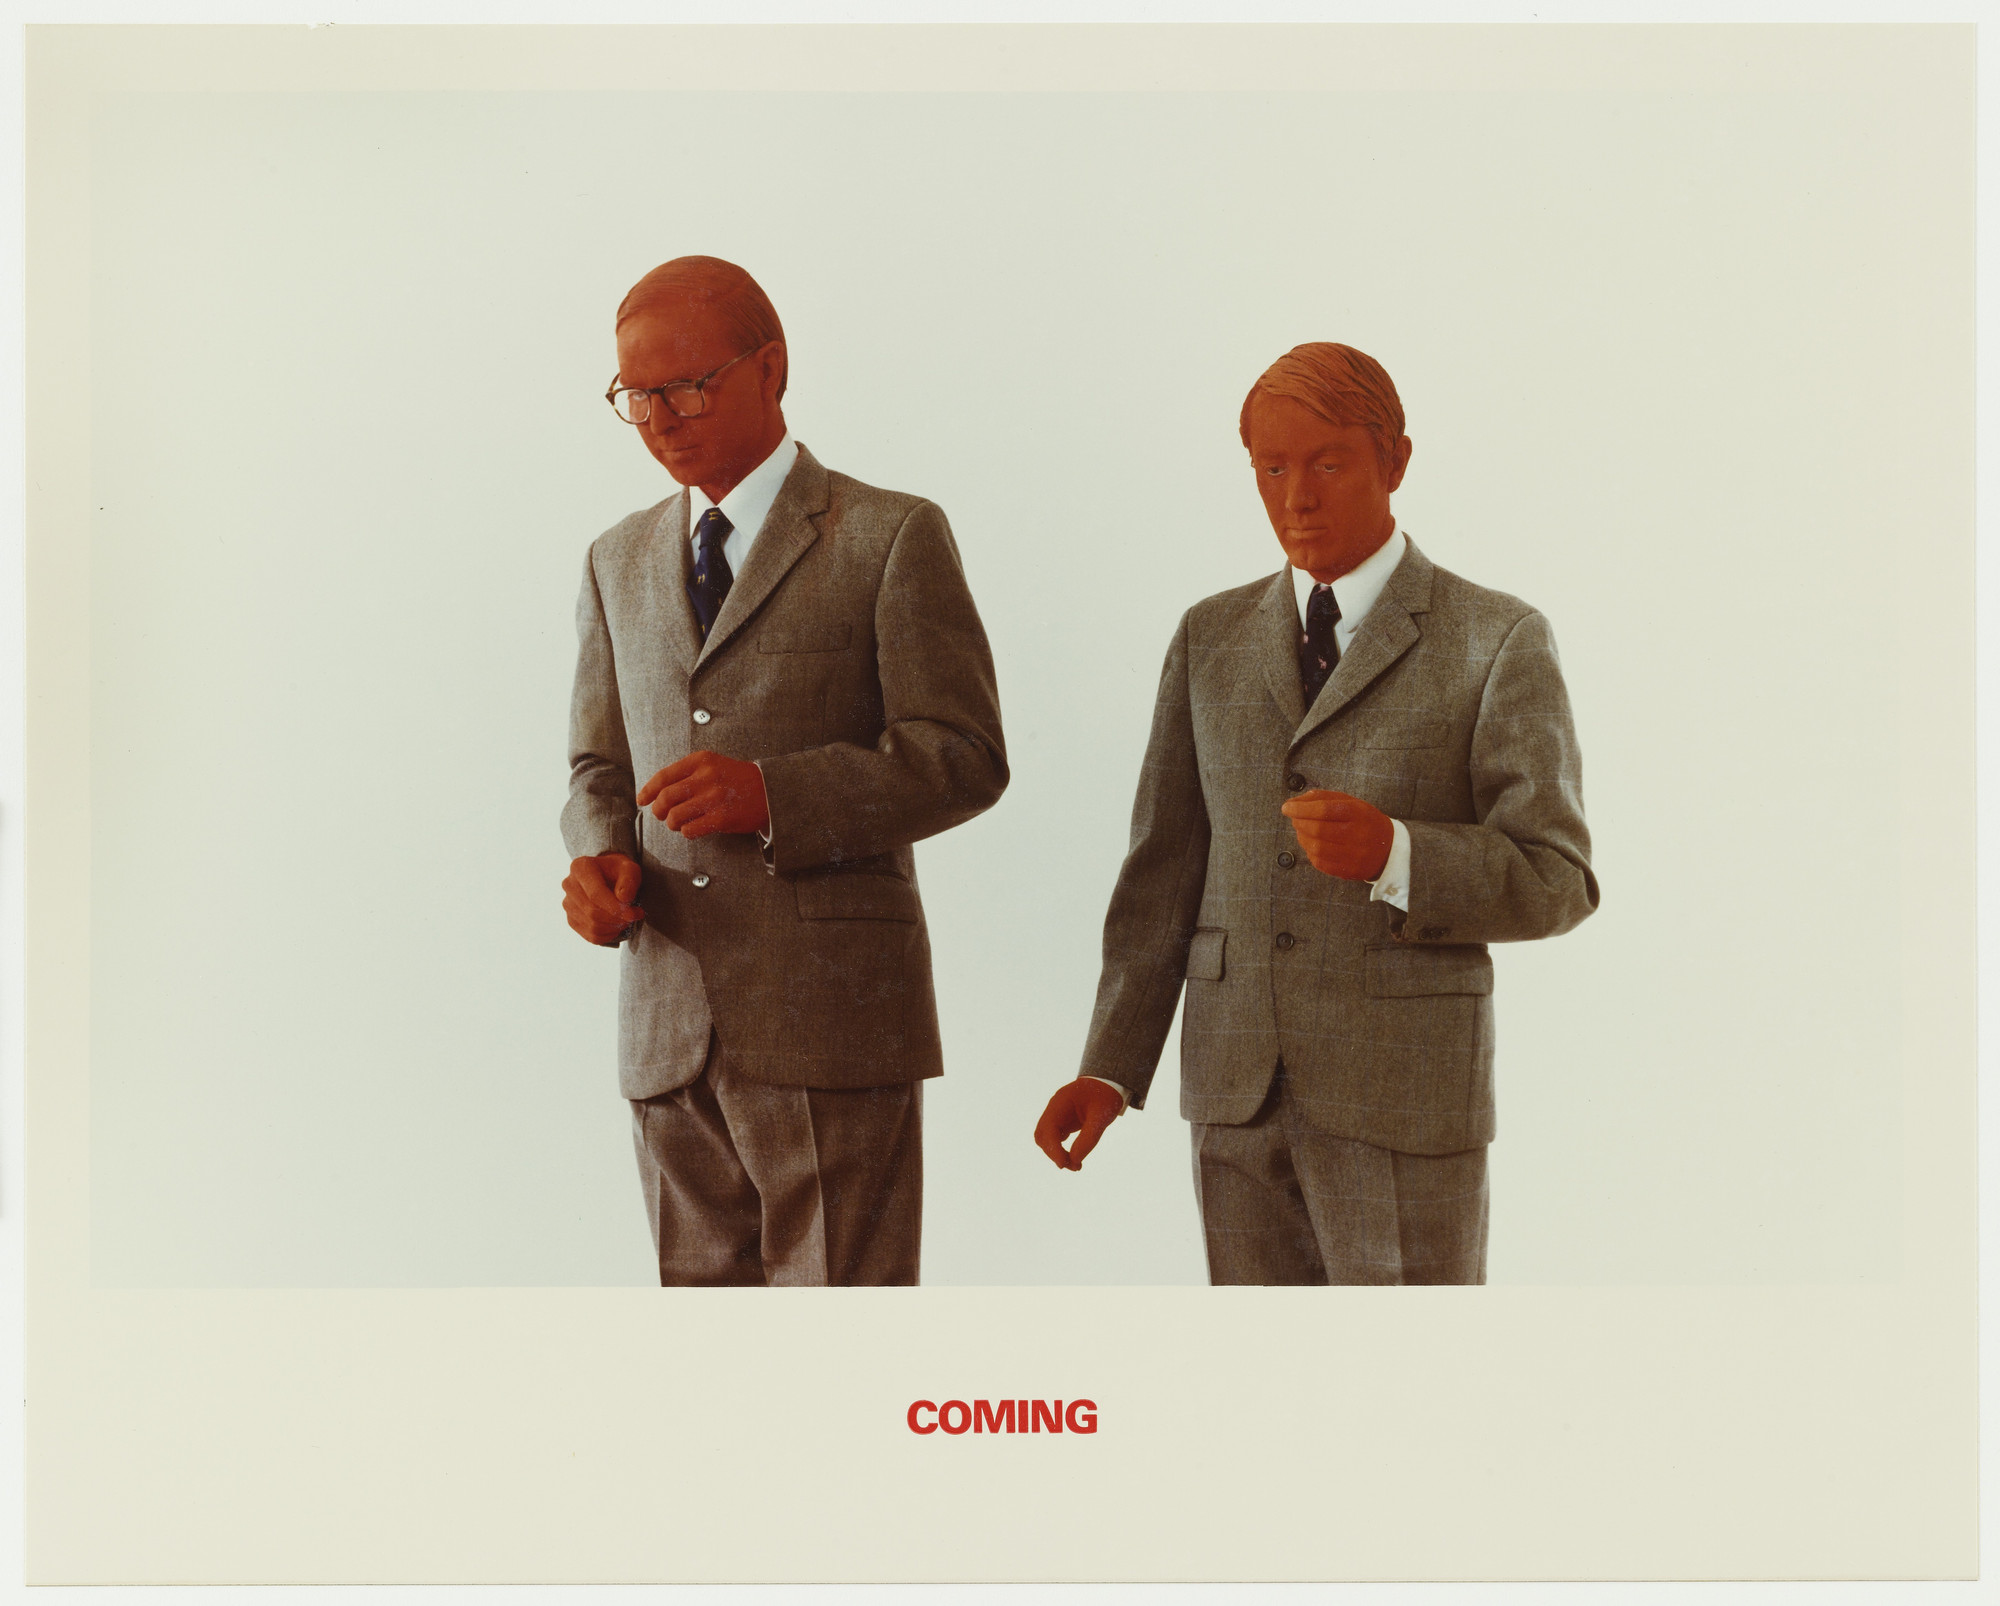 Gilbert & George. Coming. 1975